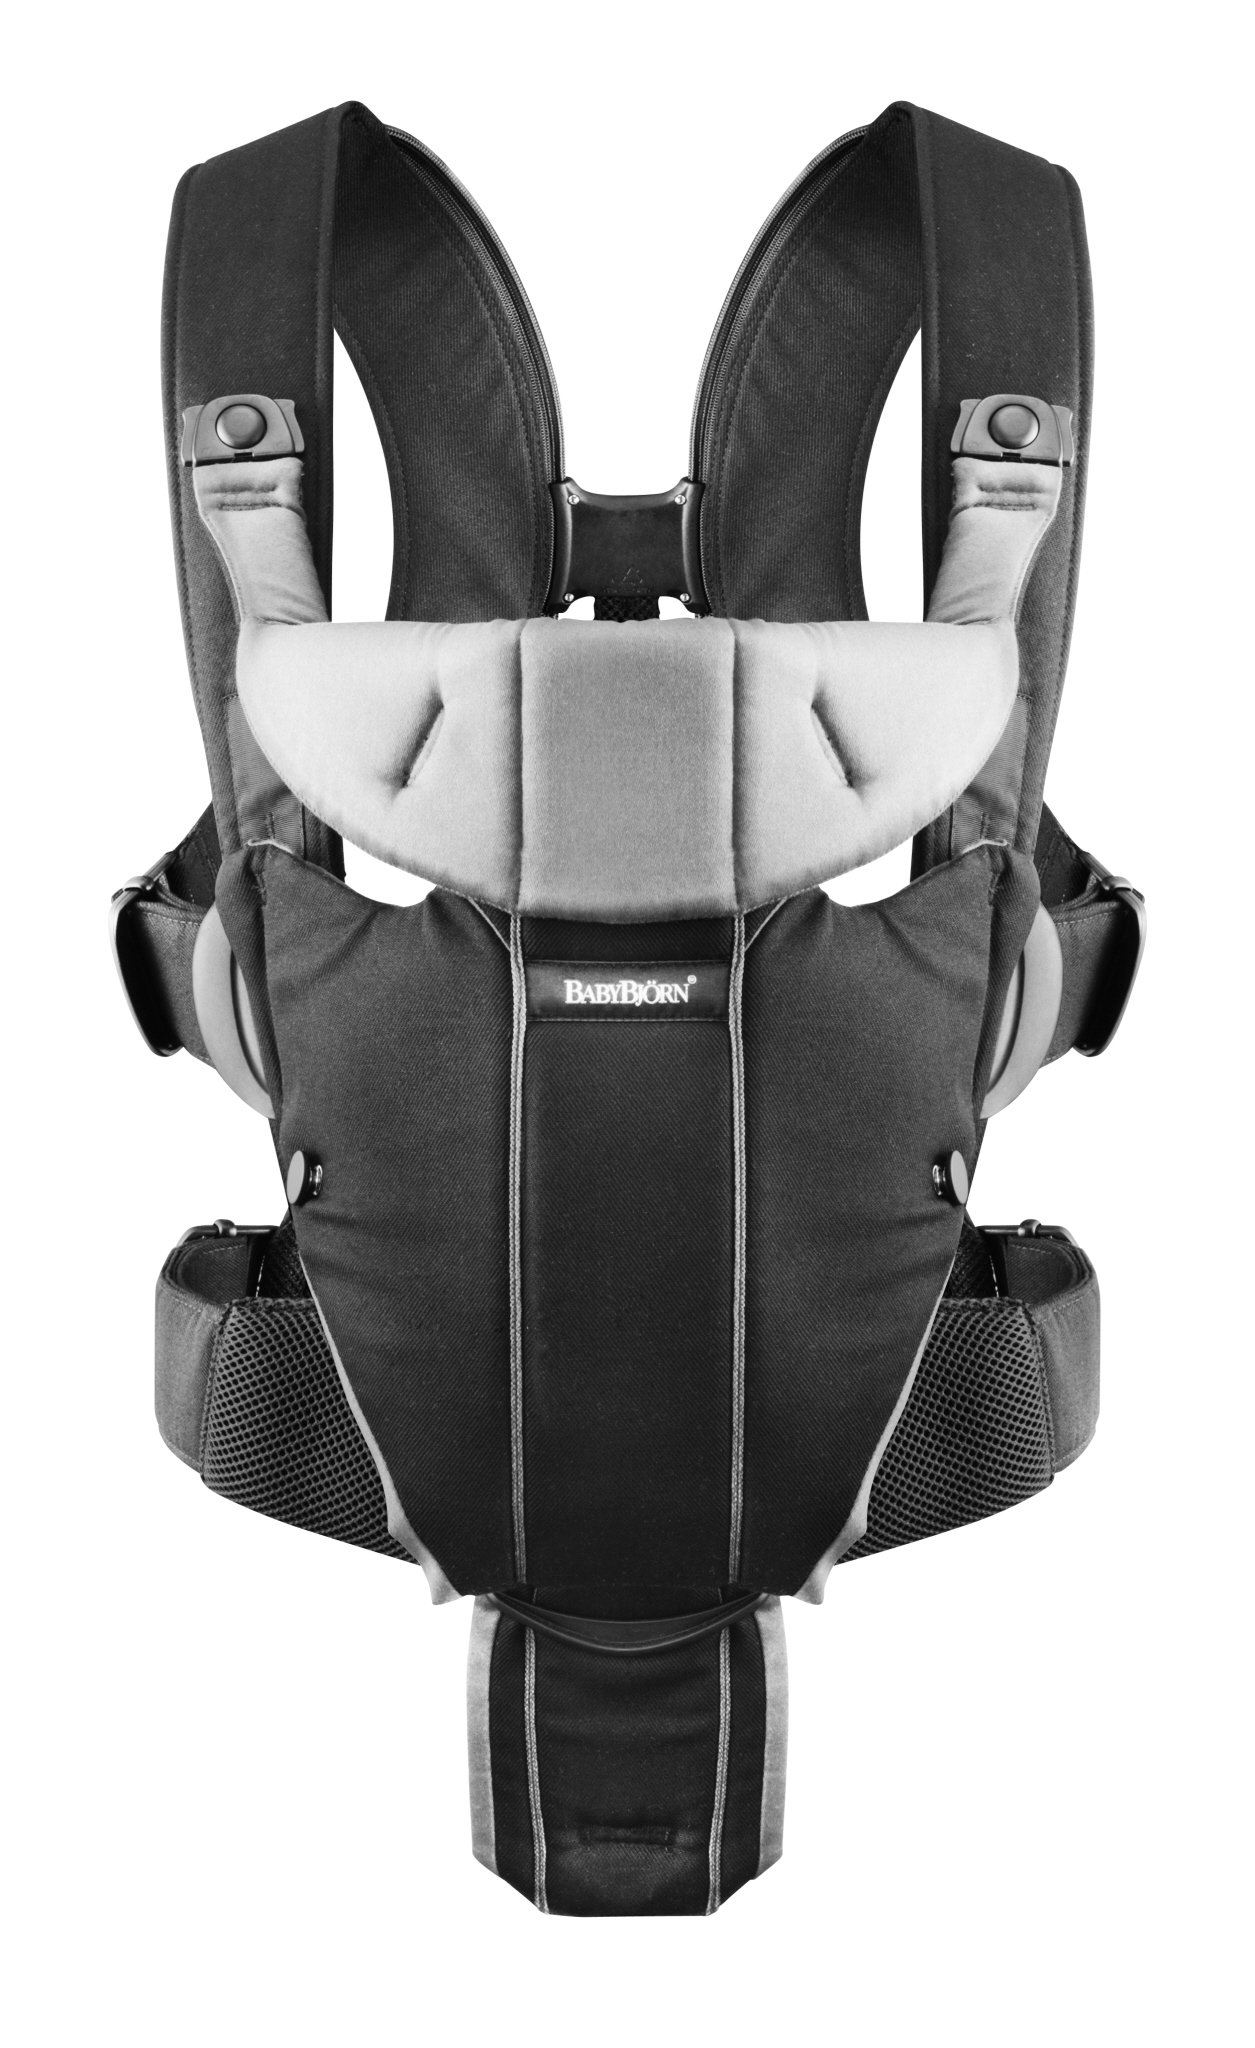 BABYBJÖRN Baby Carrier Miracle (Black/Silver, Cotton Mix) Baby Bjorn Excellent support for your lower back Comfortable waist belt distributes pressure away from your shoulders Carry on front, facing in or facing out 1